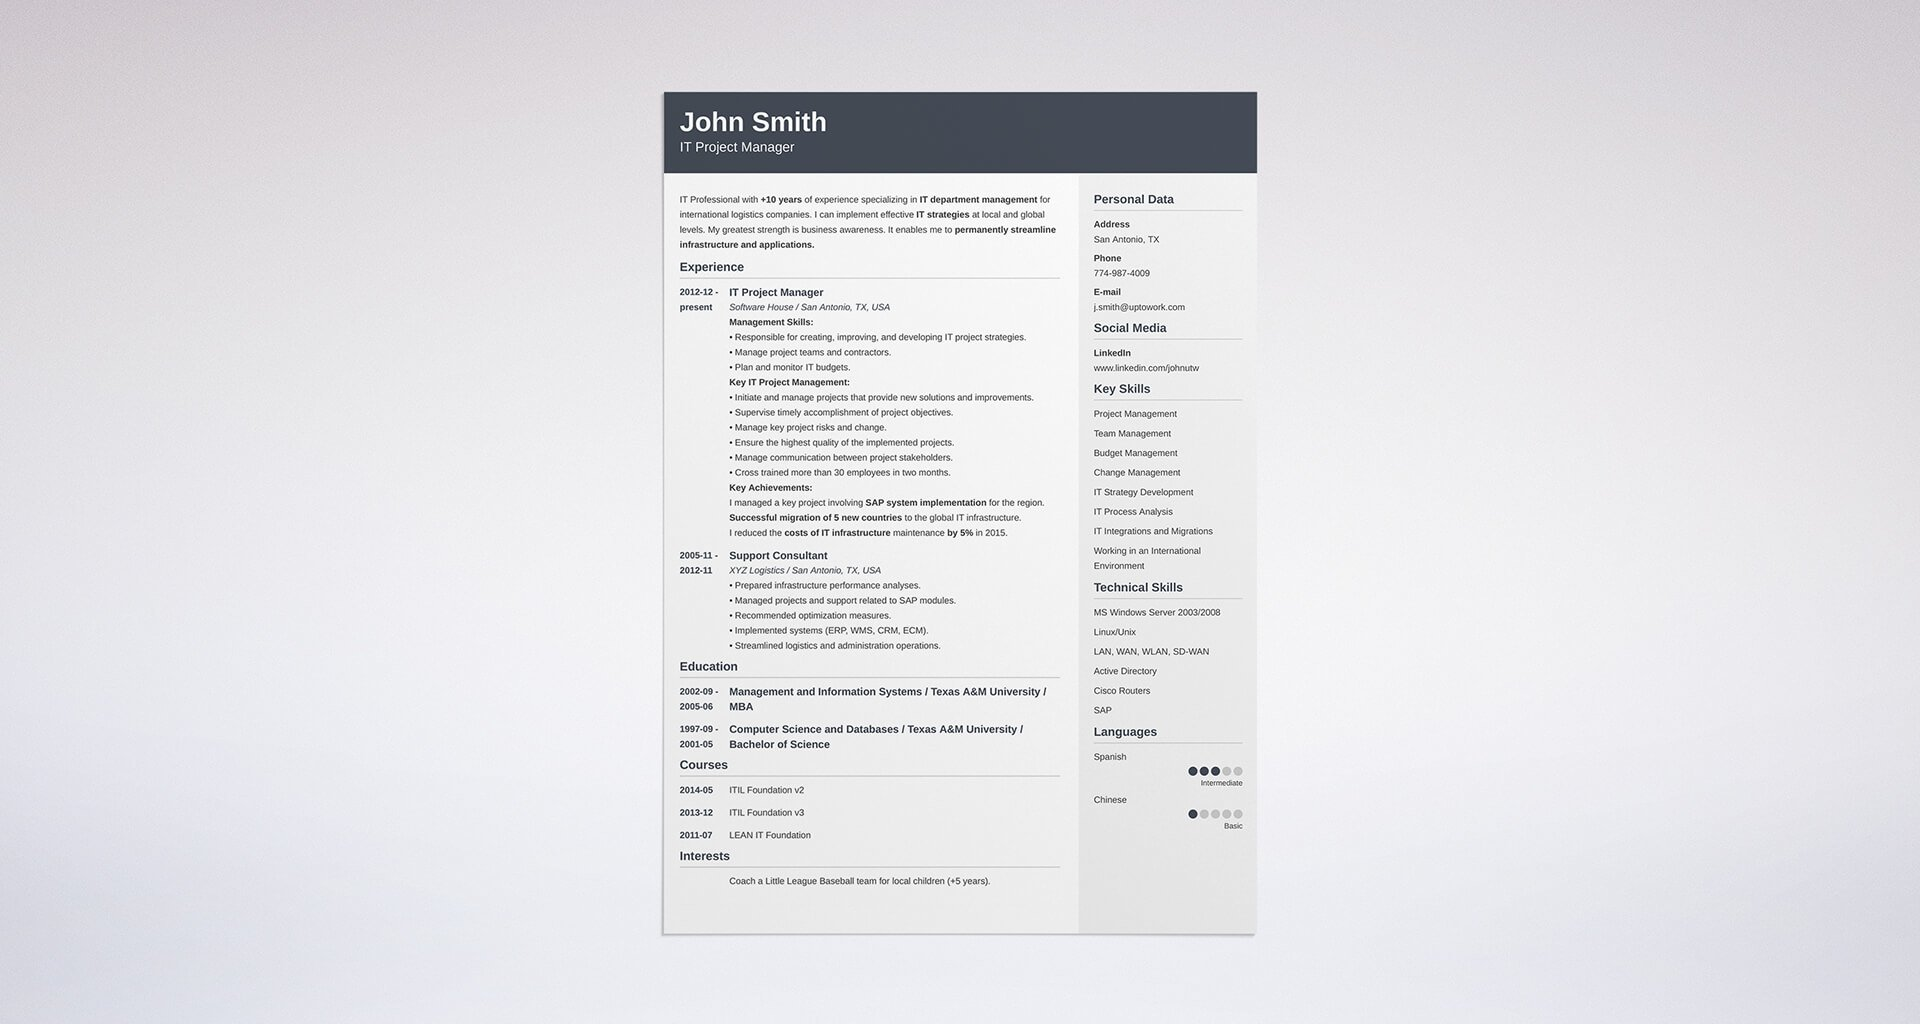 best resume format professional samples examples administrative assistant dental job Resume Professional Resume Examples 2020